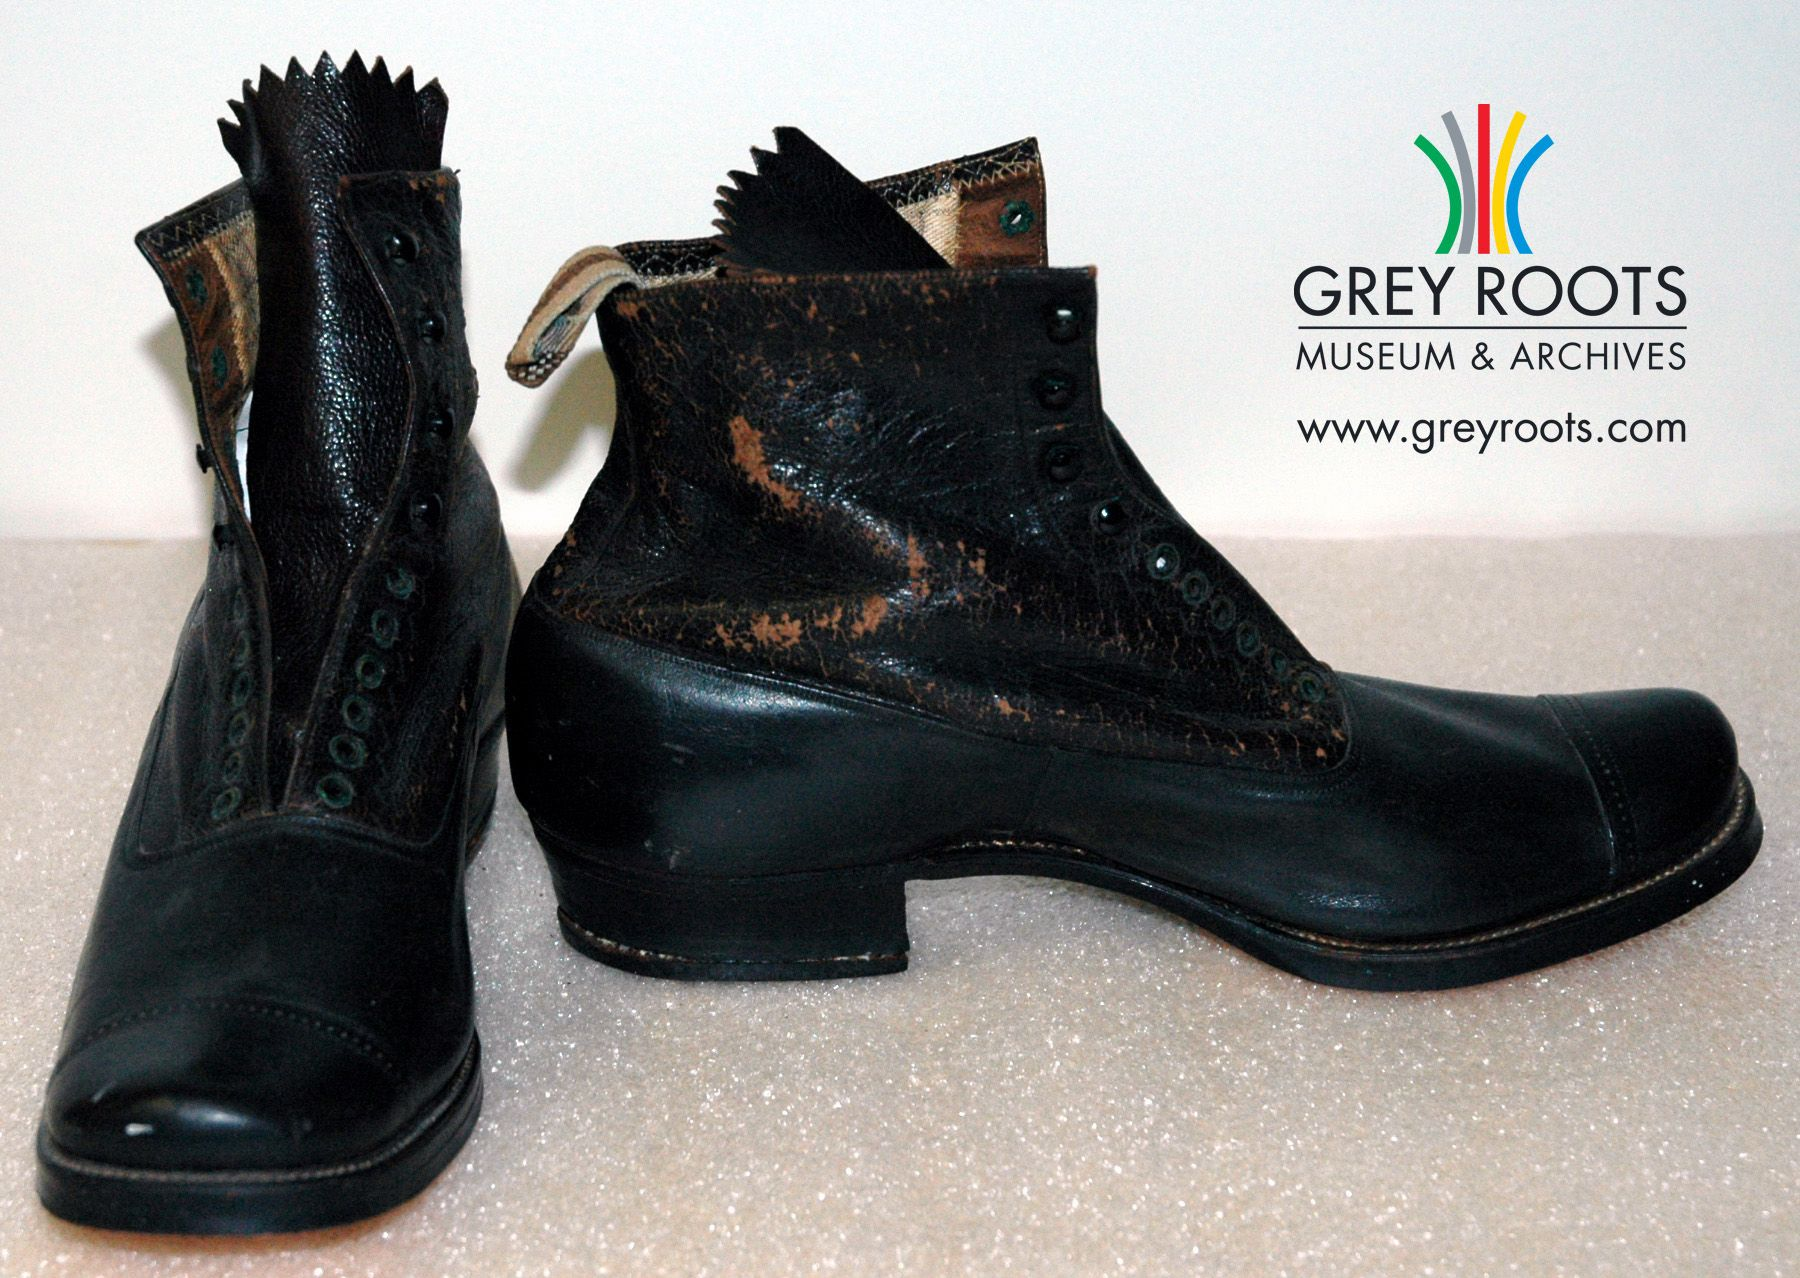 """A pair of men's, black leather boots with leather soles and rounded toes. The boots are lined with a checkered brown and beige cotton lining. The sole is stamped with a trademark that includes the word """"Foward"""". Grey Roots Museum and Archives Collection."""